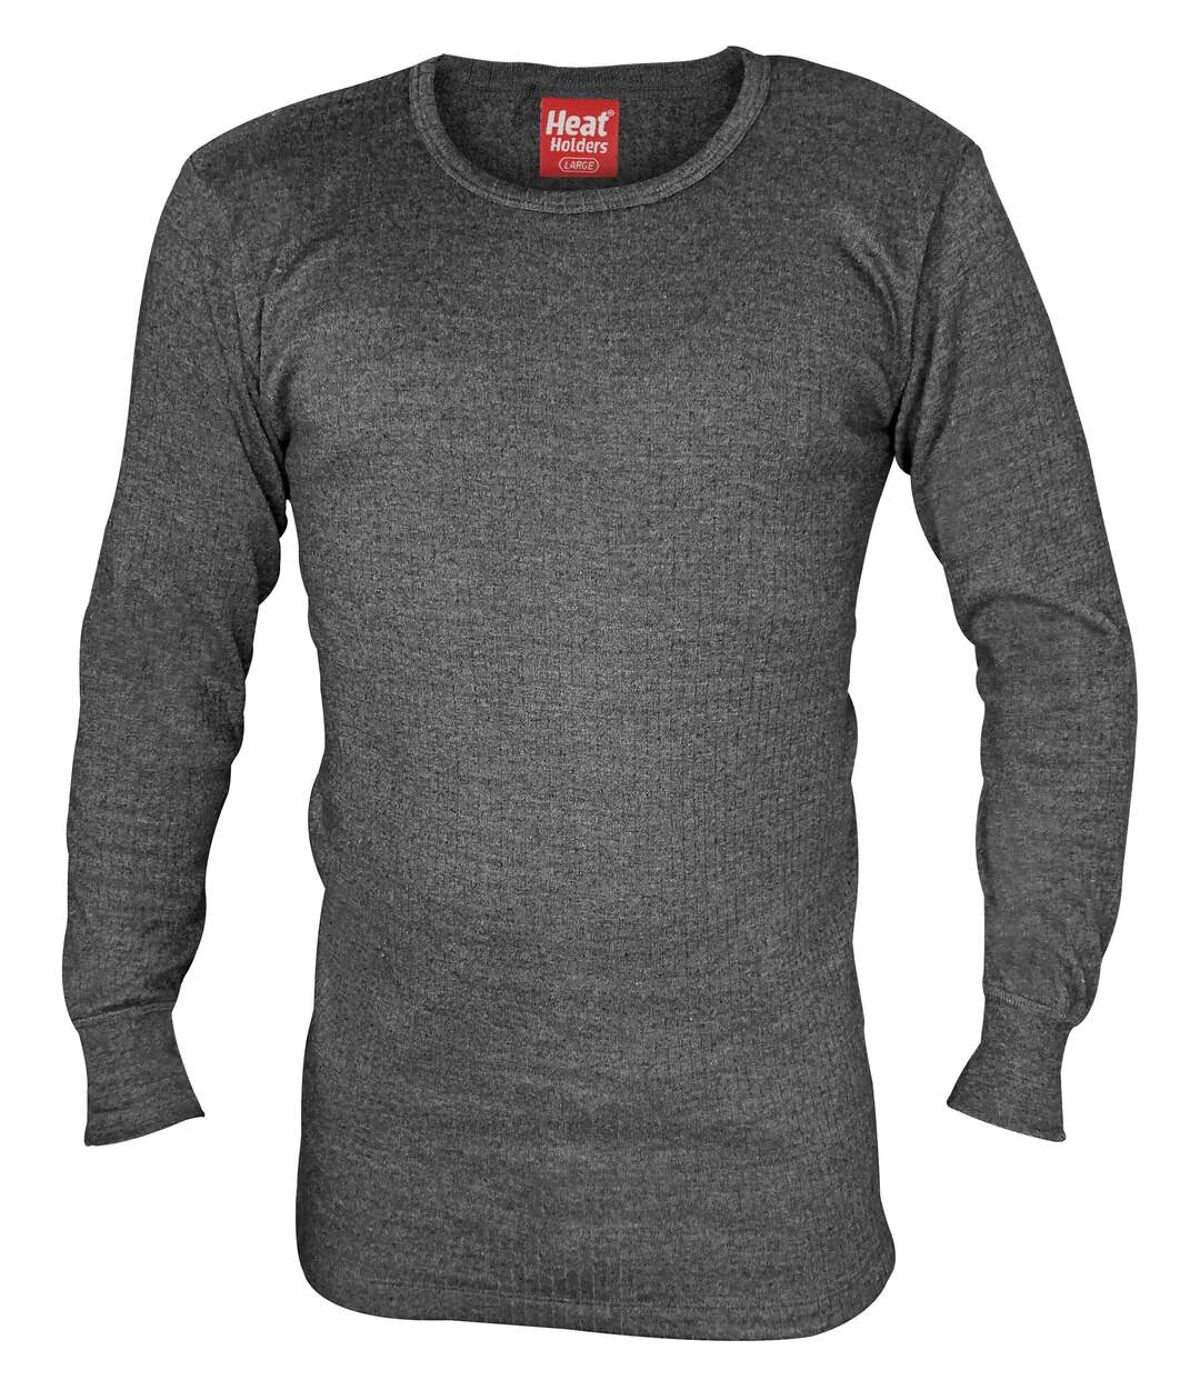 Mens Cotton Thermal Underwear Long Sleeve Top